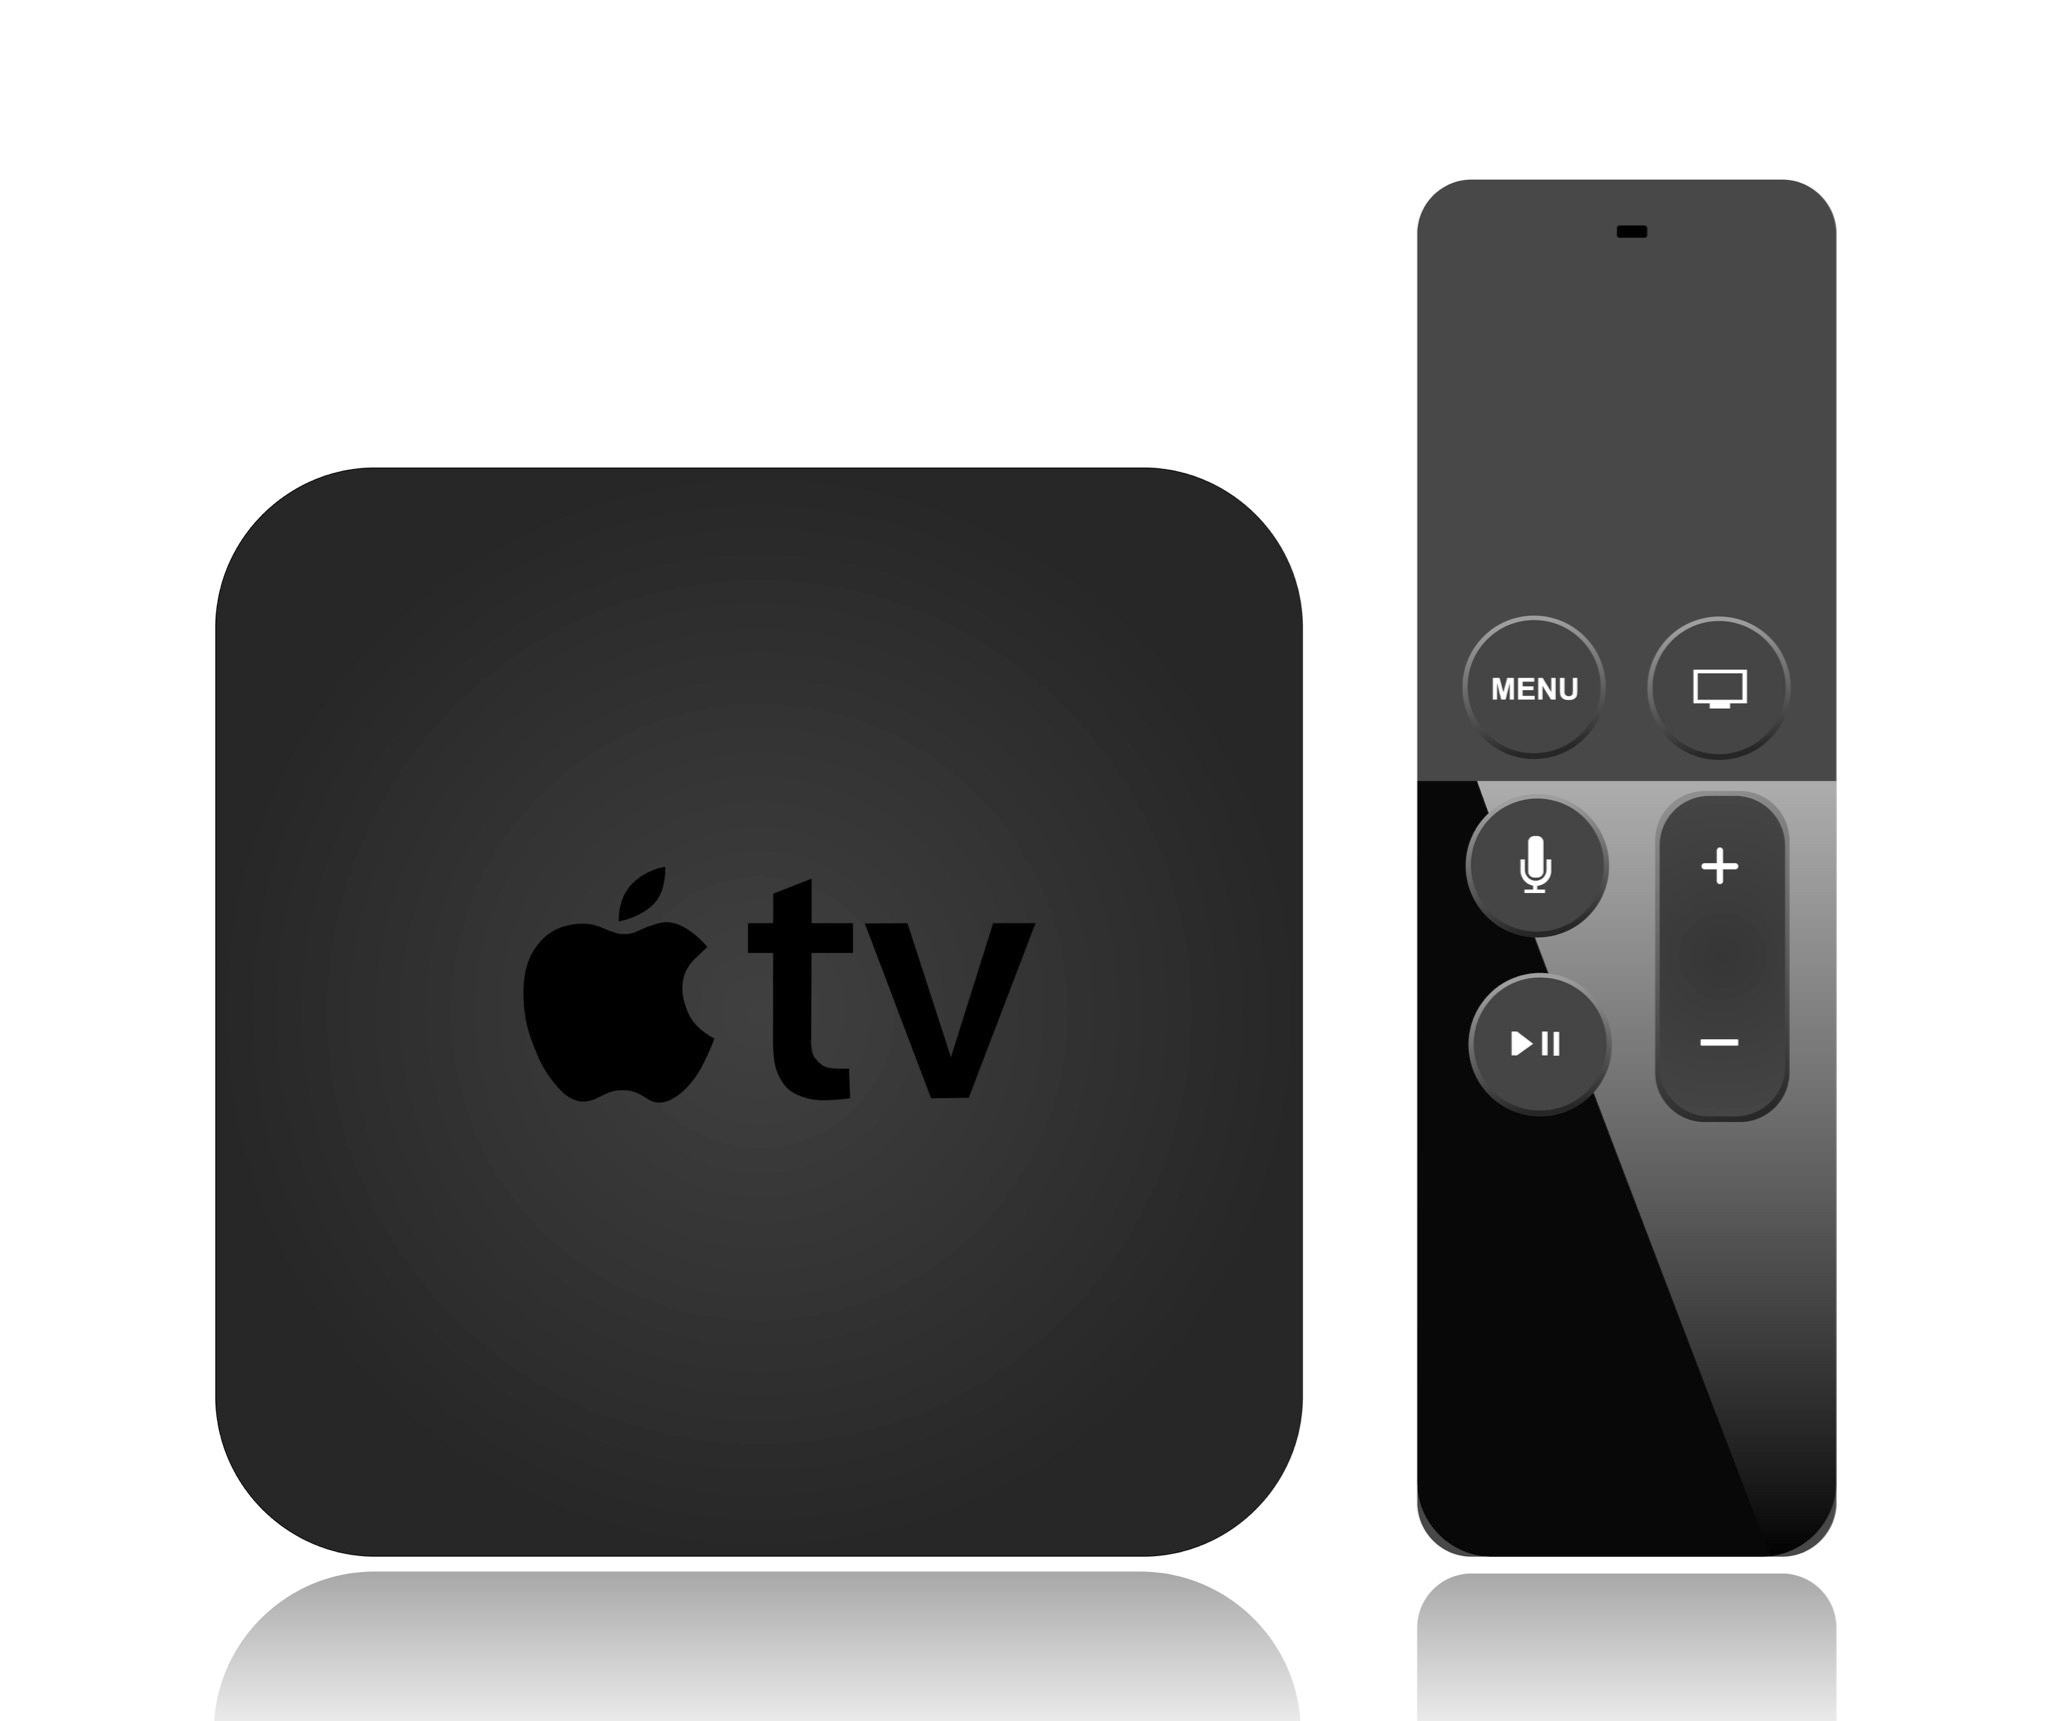 8 perfect accessory gift ideas for Apple TV owners